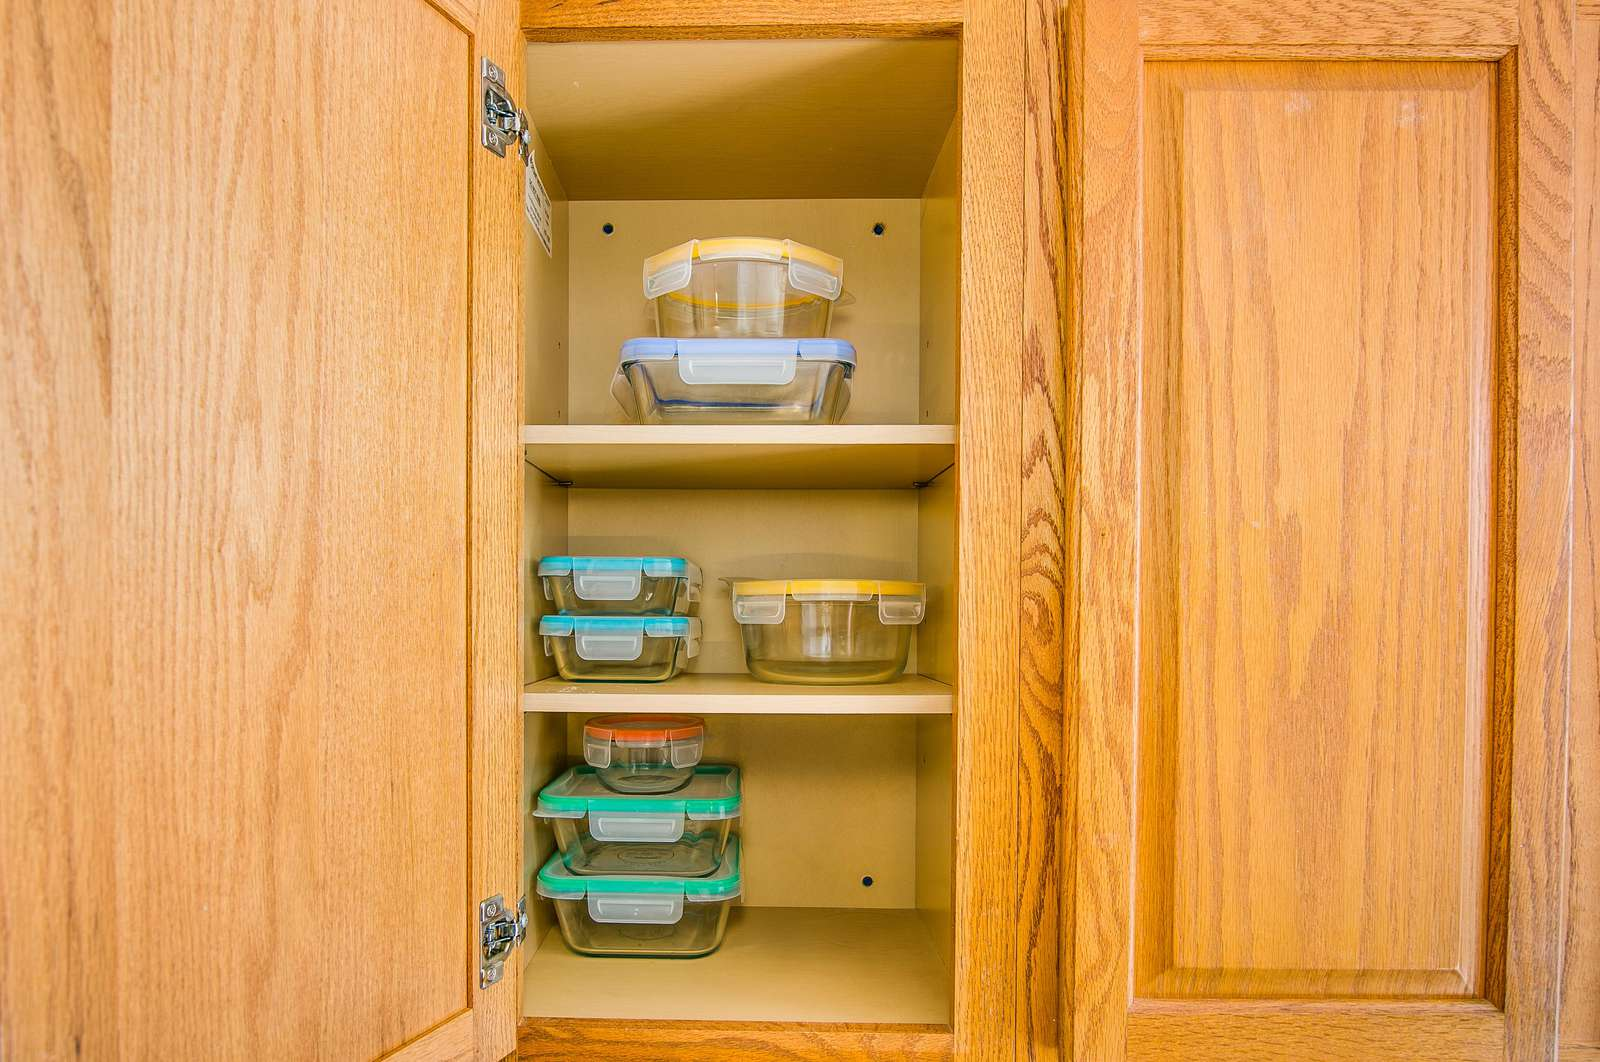 Food storage to keep items fresh in the fridge.